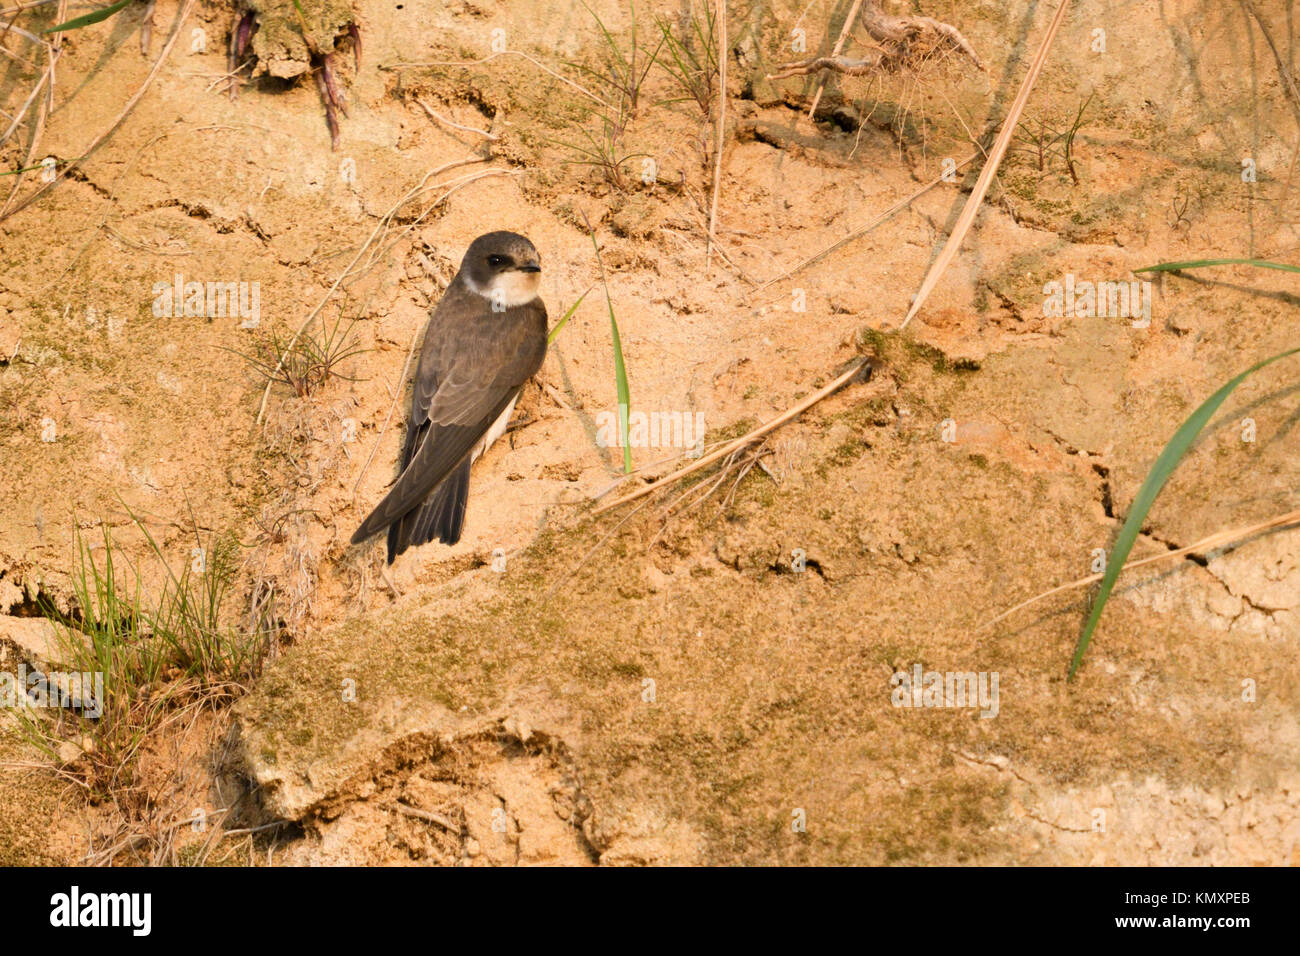 Sand Martin / Bank Swallow / Swallow ( Riparia riparia) just arrived in its breeding territory, searching for a Stock Photo